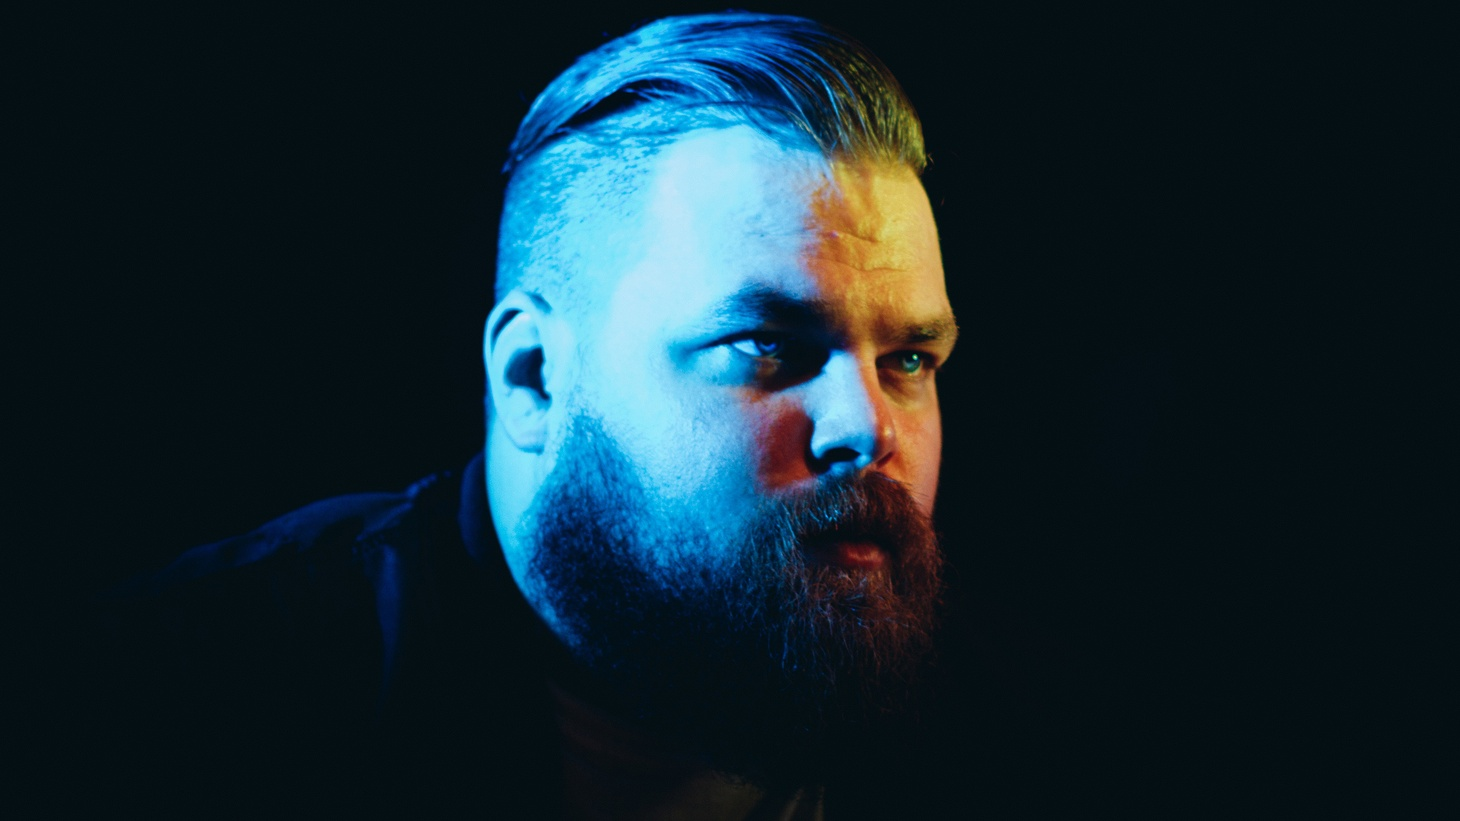 """A new project by Com Truise has been unveiled with the release of """"Persuasion System"""" the title track to a new mini-LP. The track is an aural journey through duality, melancholy, and optimism."""